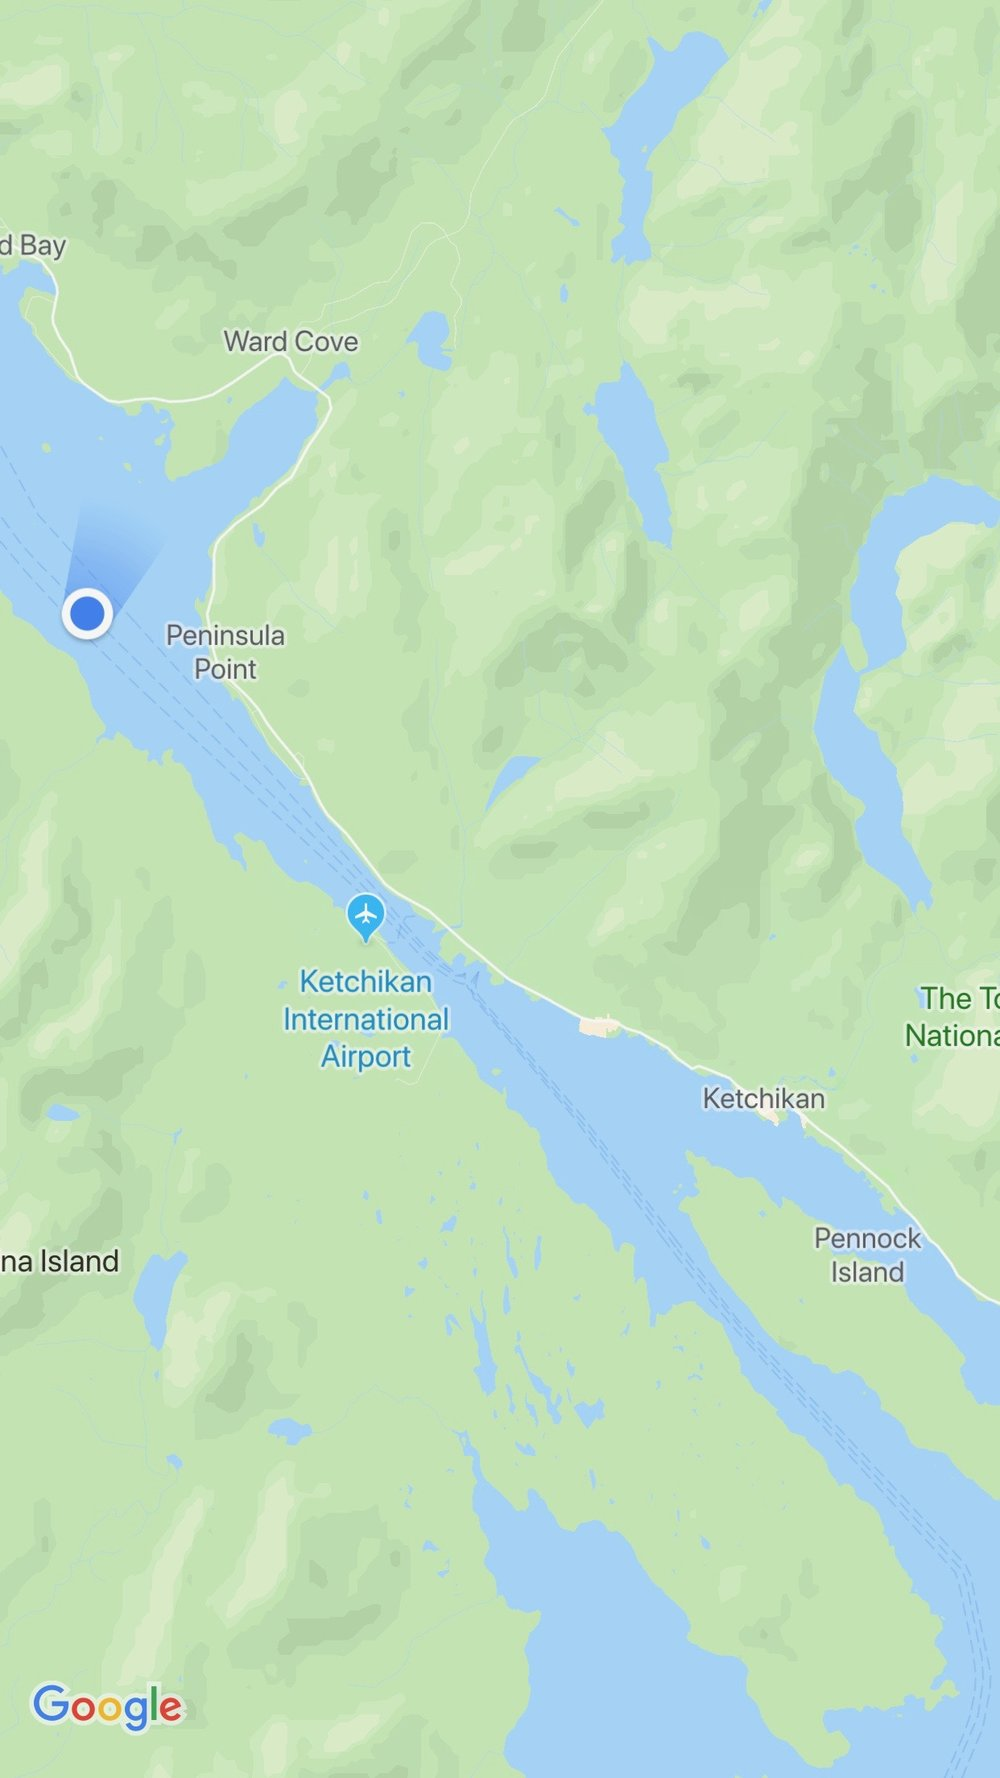 Our spot on the map as we came into Ketchikan